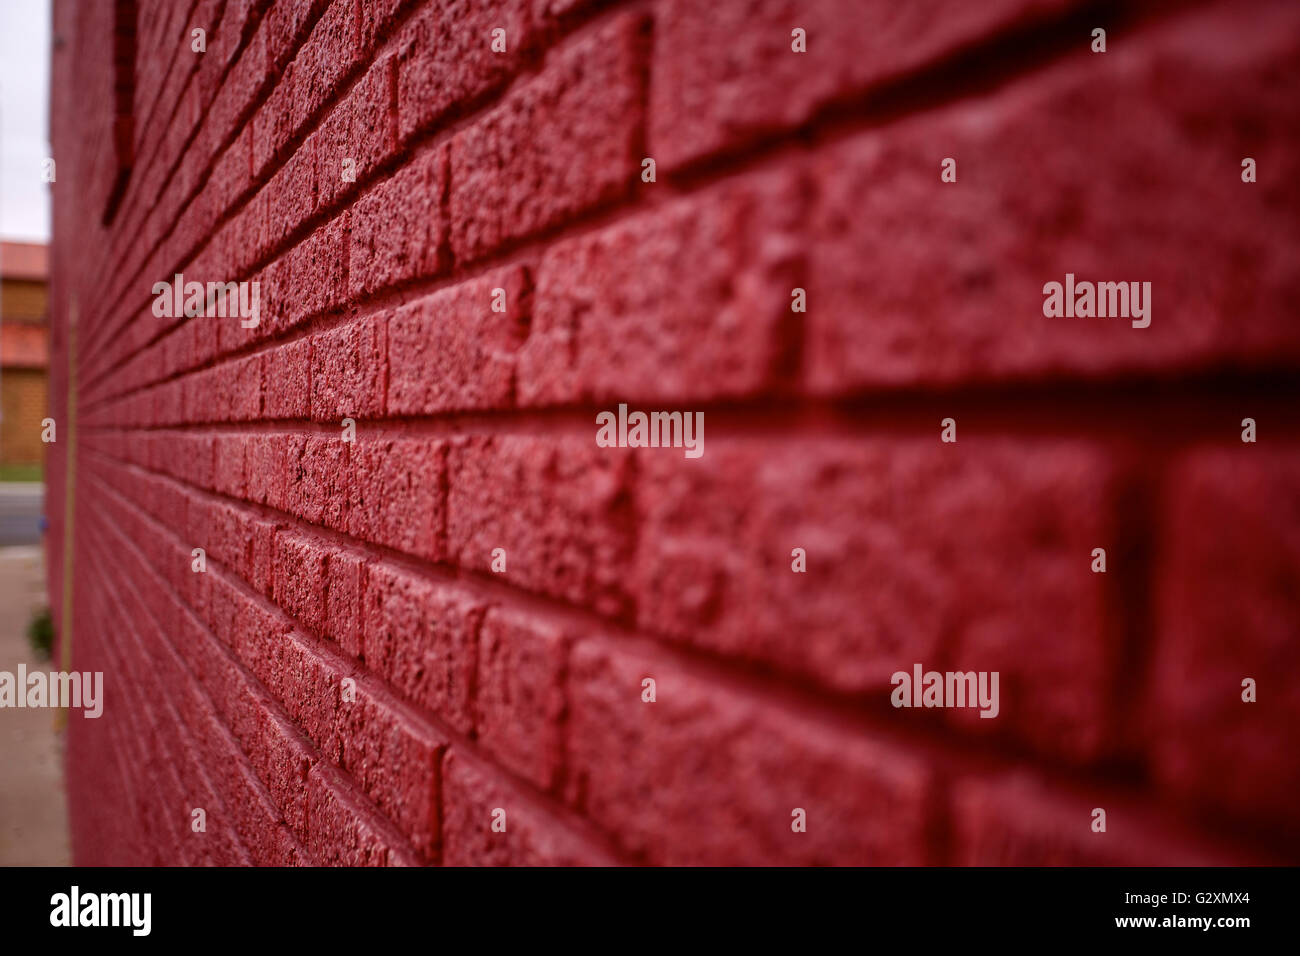 Abstract view of a painted red brick wall. Digital background or wallpaper with lines and tension. Stock Photo